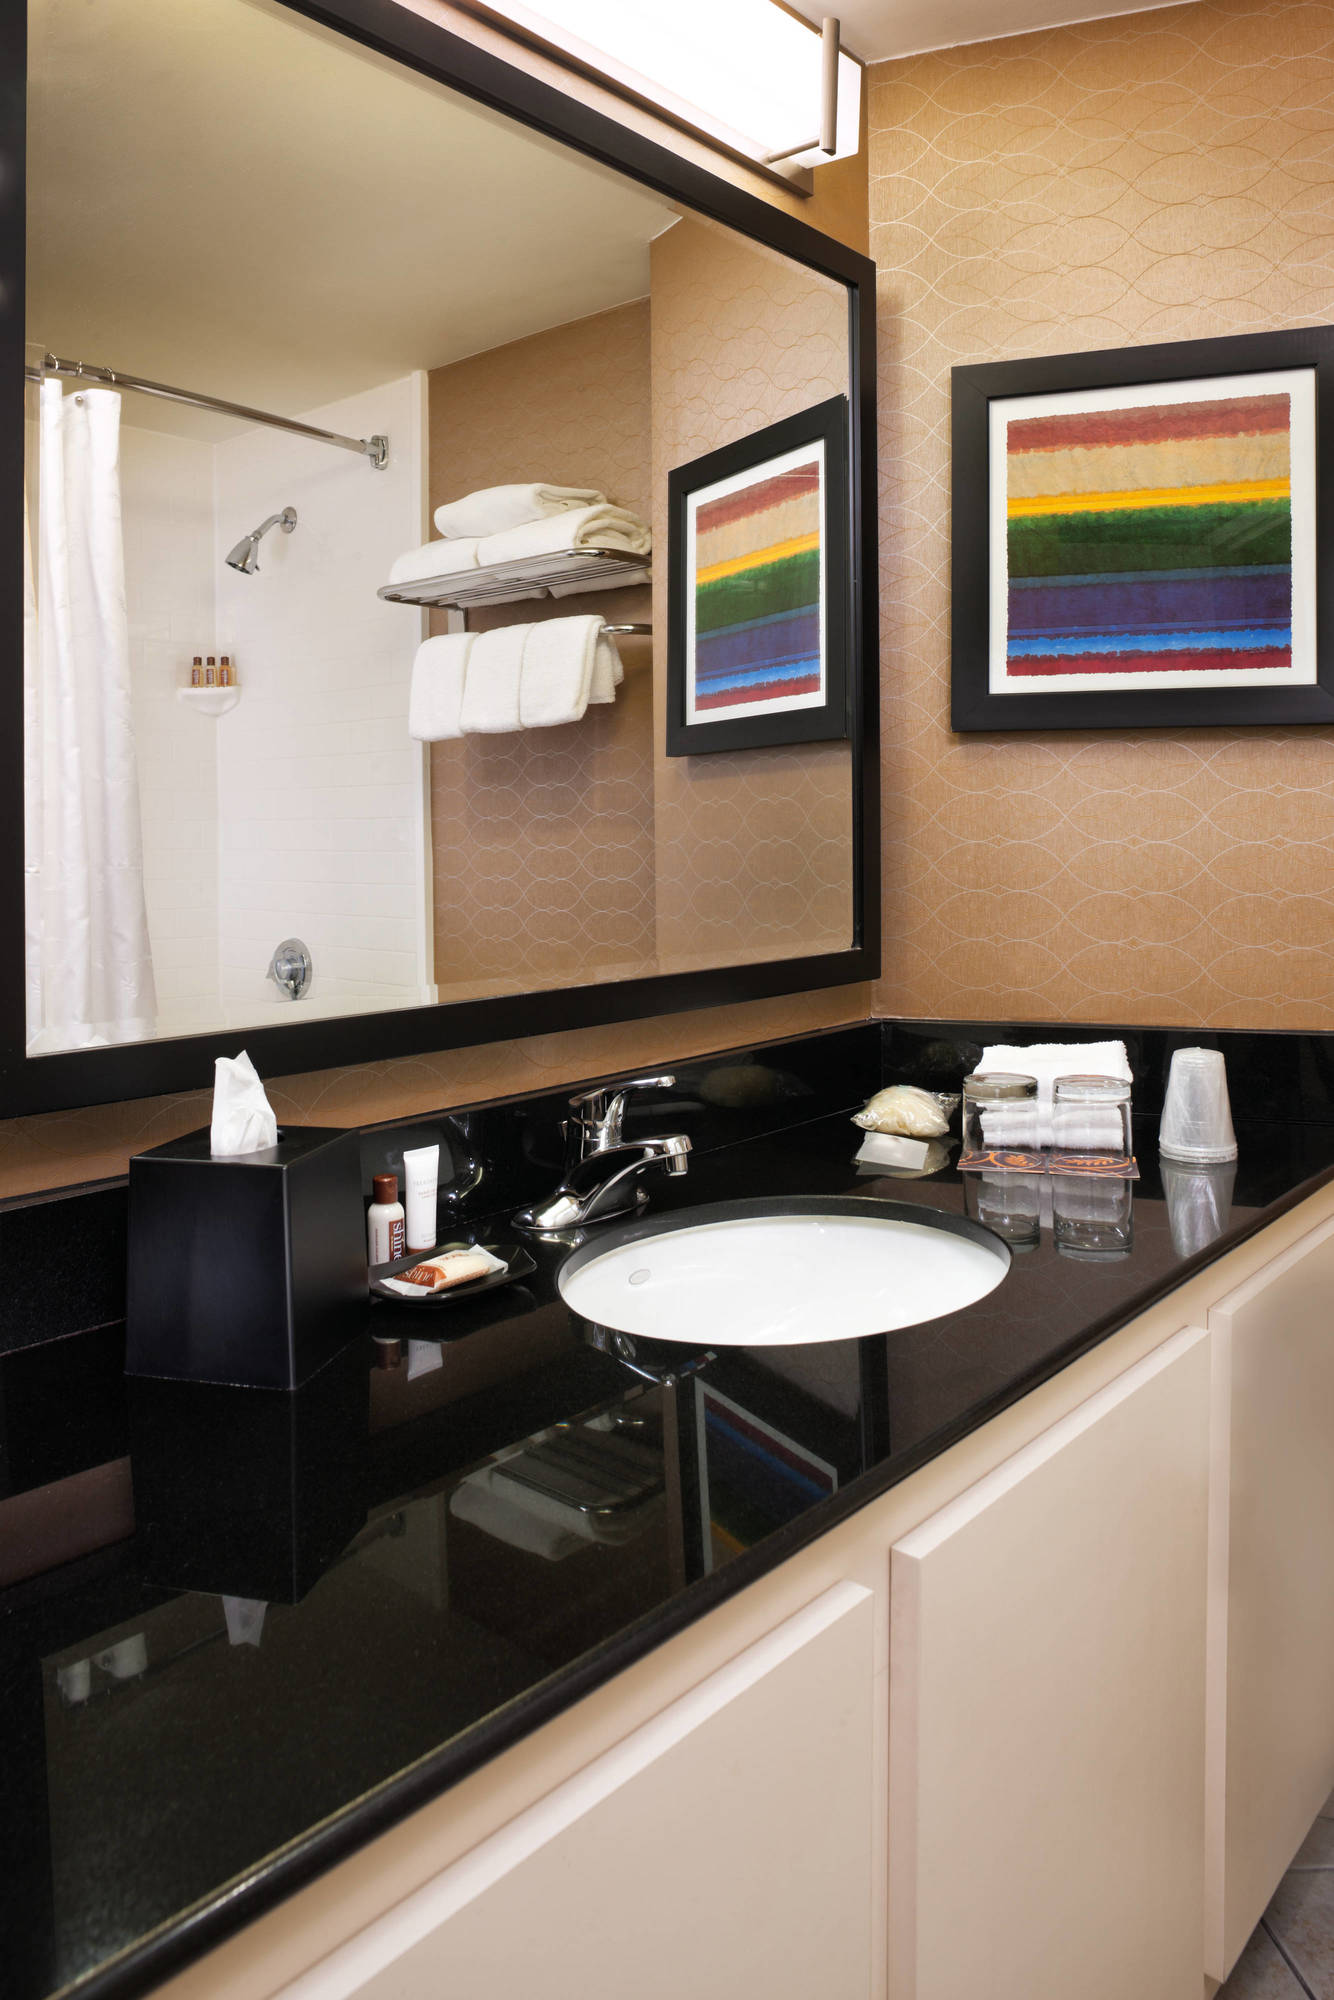 Sheraton Suites Chicago O'Hare, Rosemont, IL Jobs ...